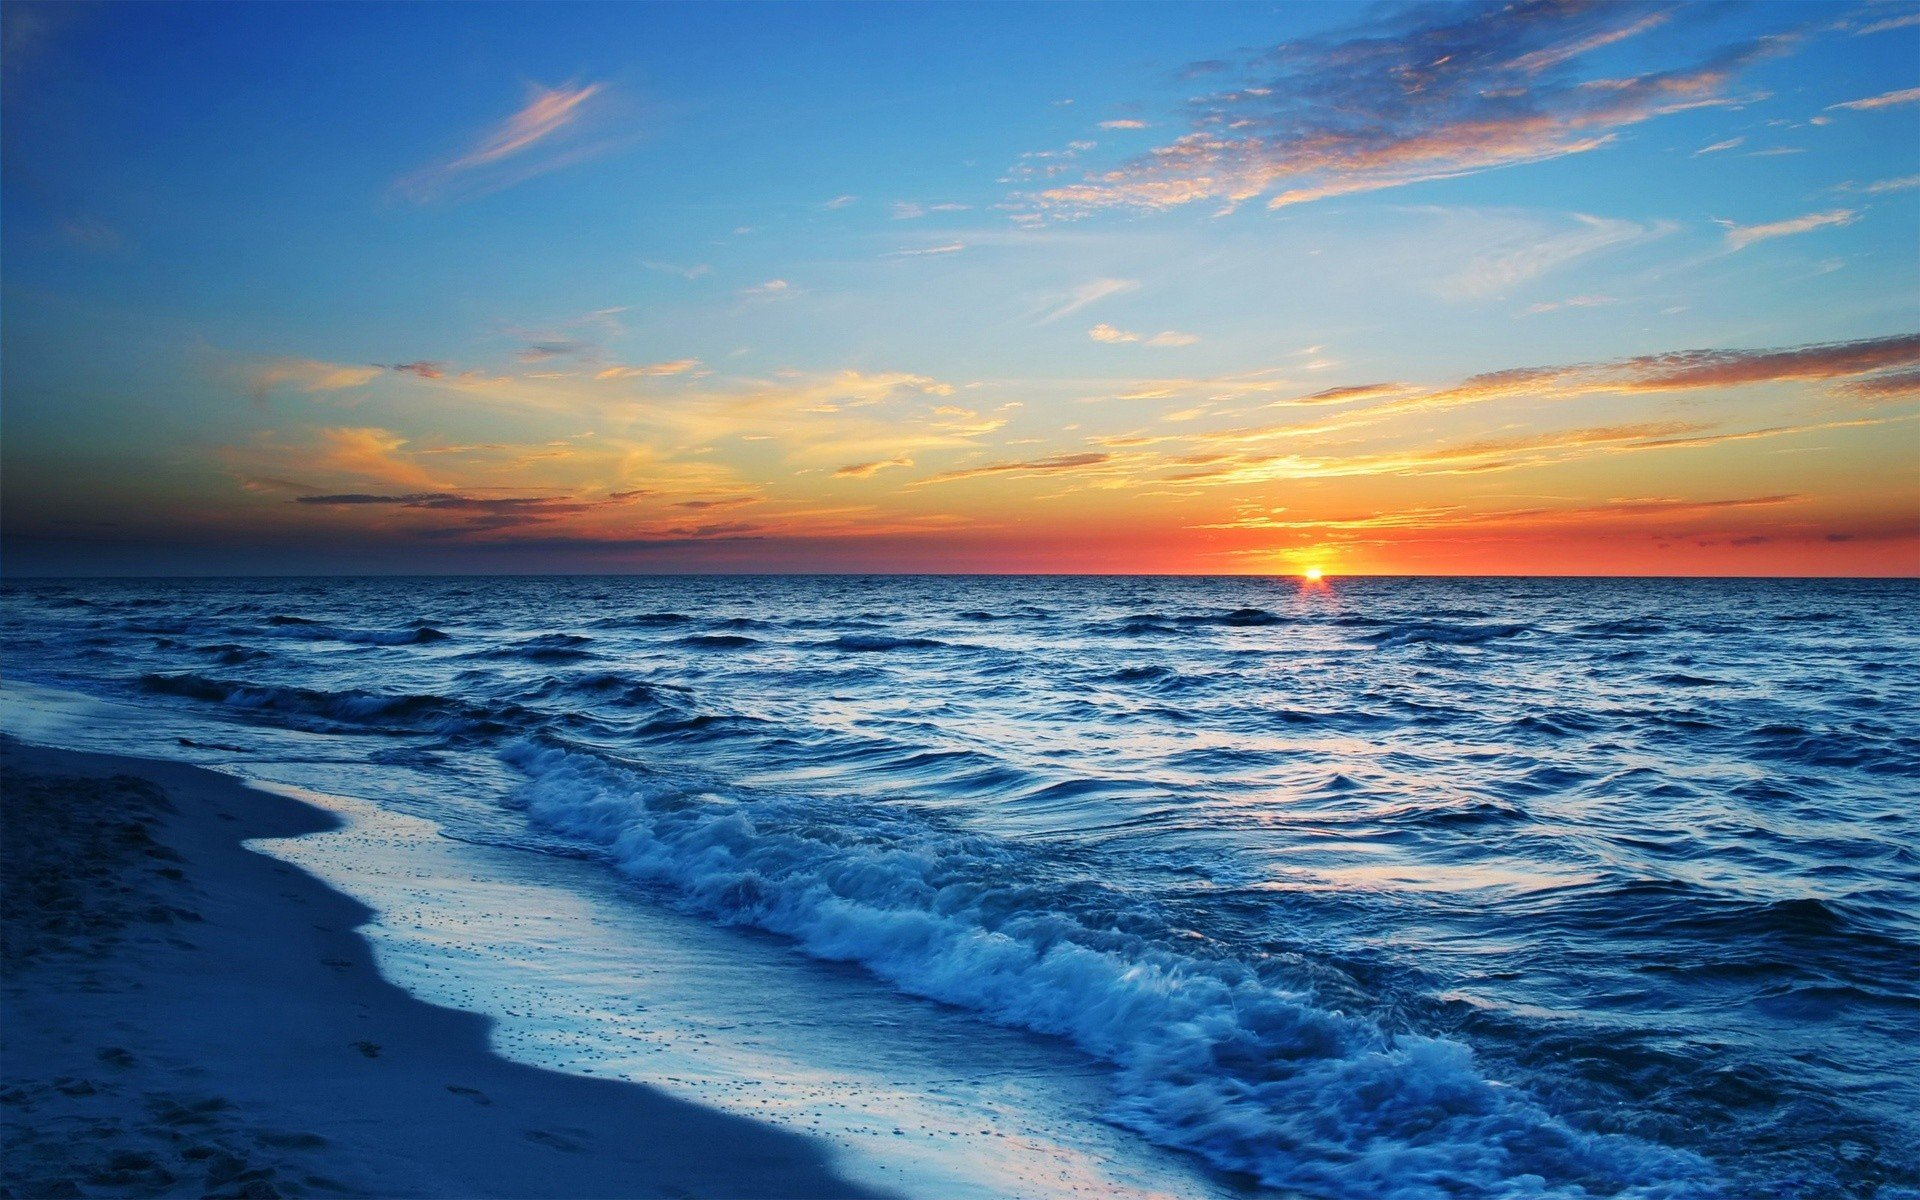 Sunset ocean beach sea waves wallpaper background 1920x1200